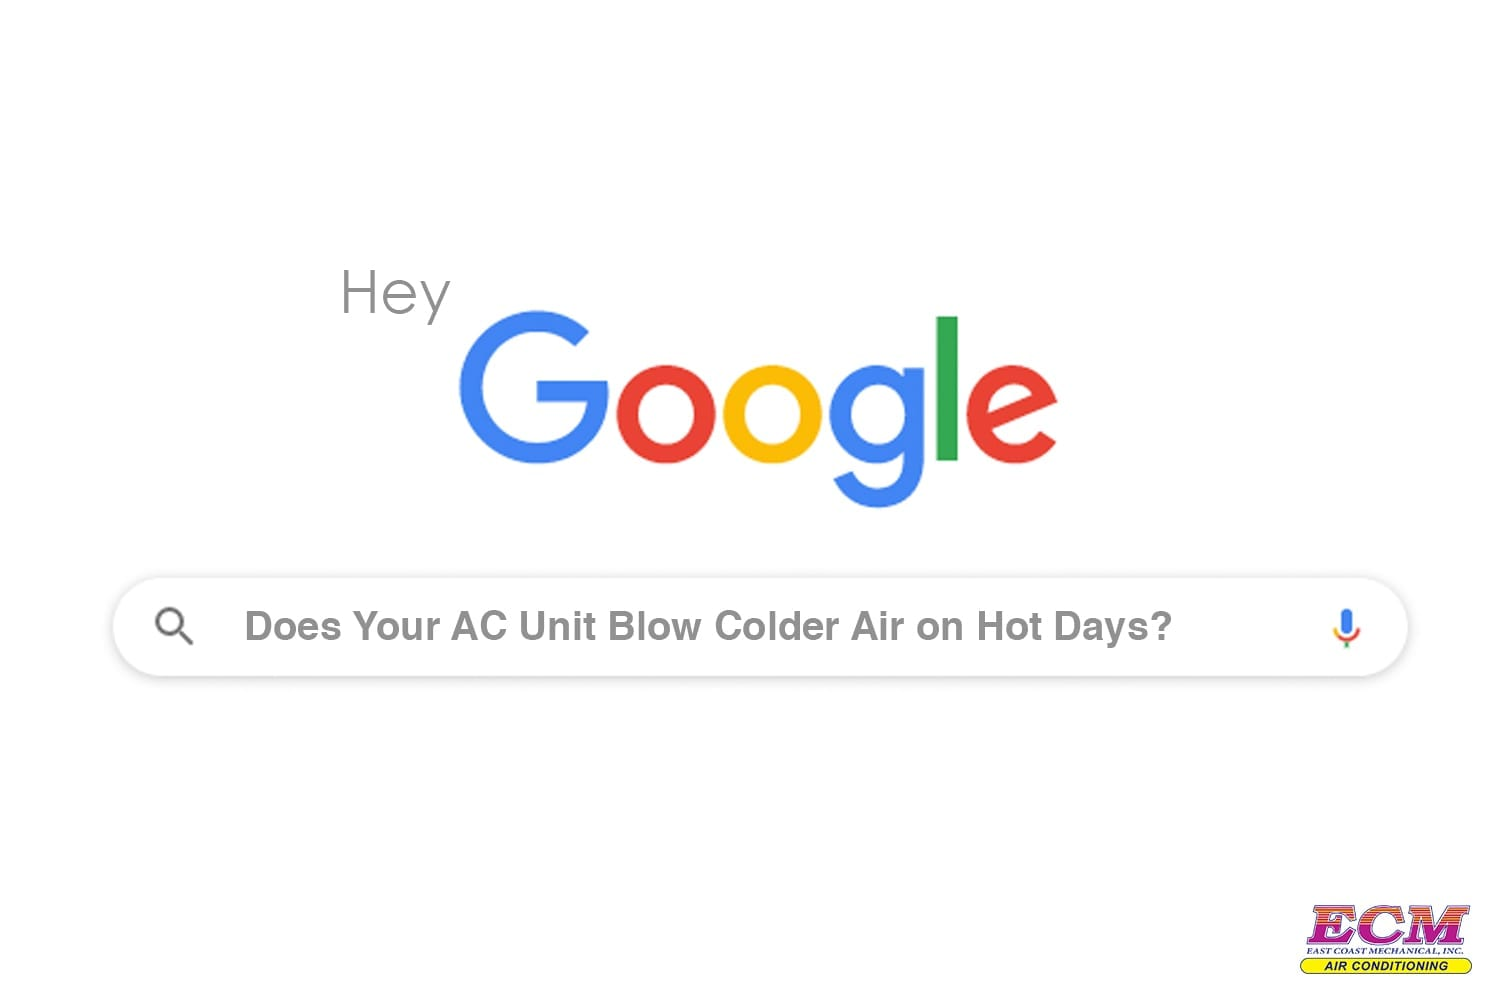 Does Your AC Blow Colder Air on Hot Days